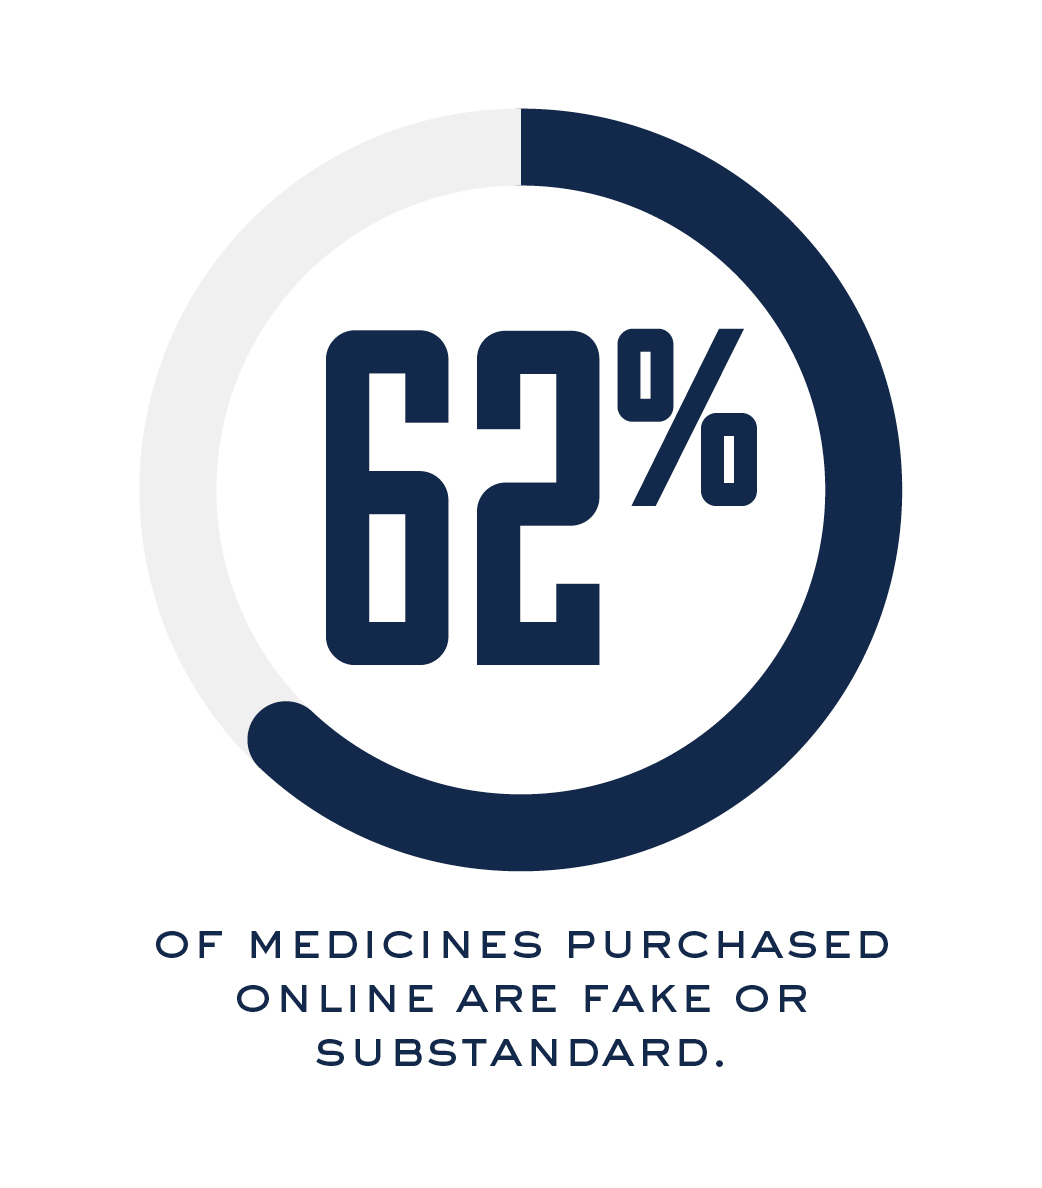 62% of medicines purchased online are fake or substandard.